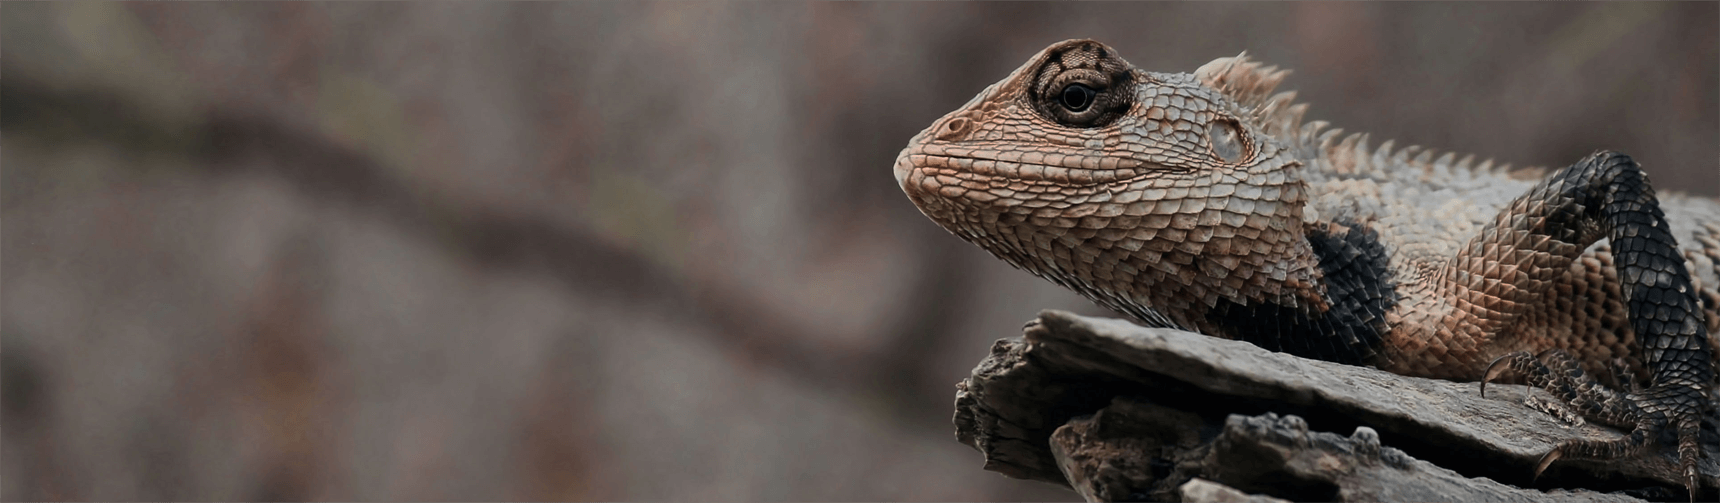 An image of a chameleon to represent adaptability